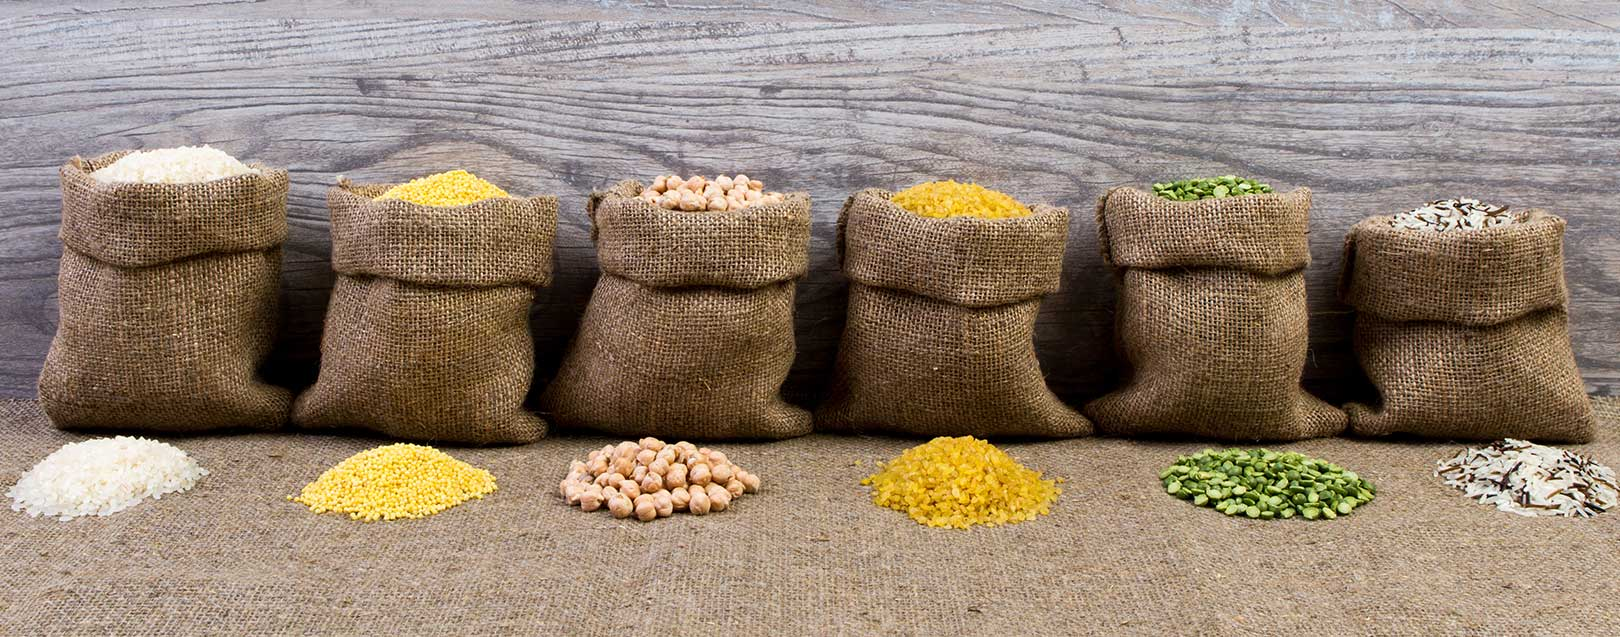 China likely to import more food grains as output declines